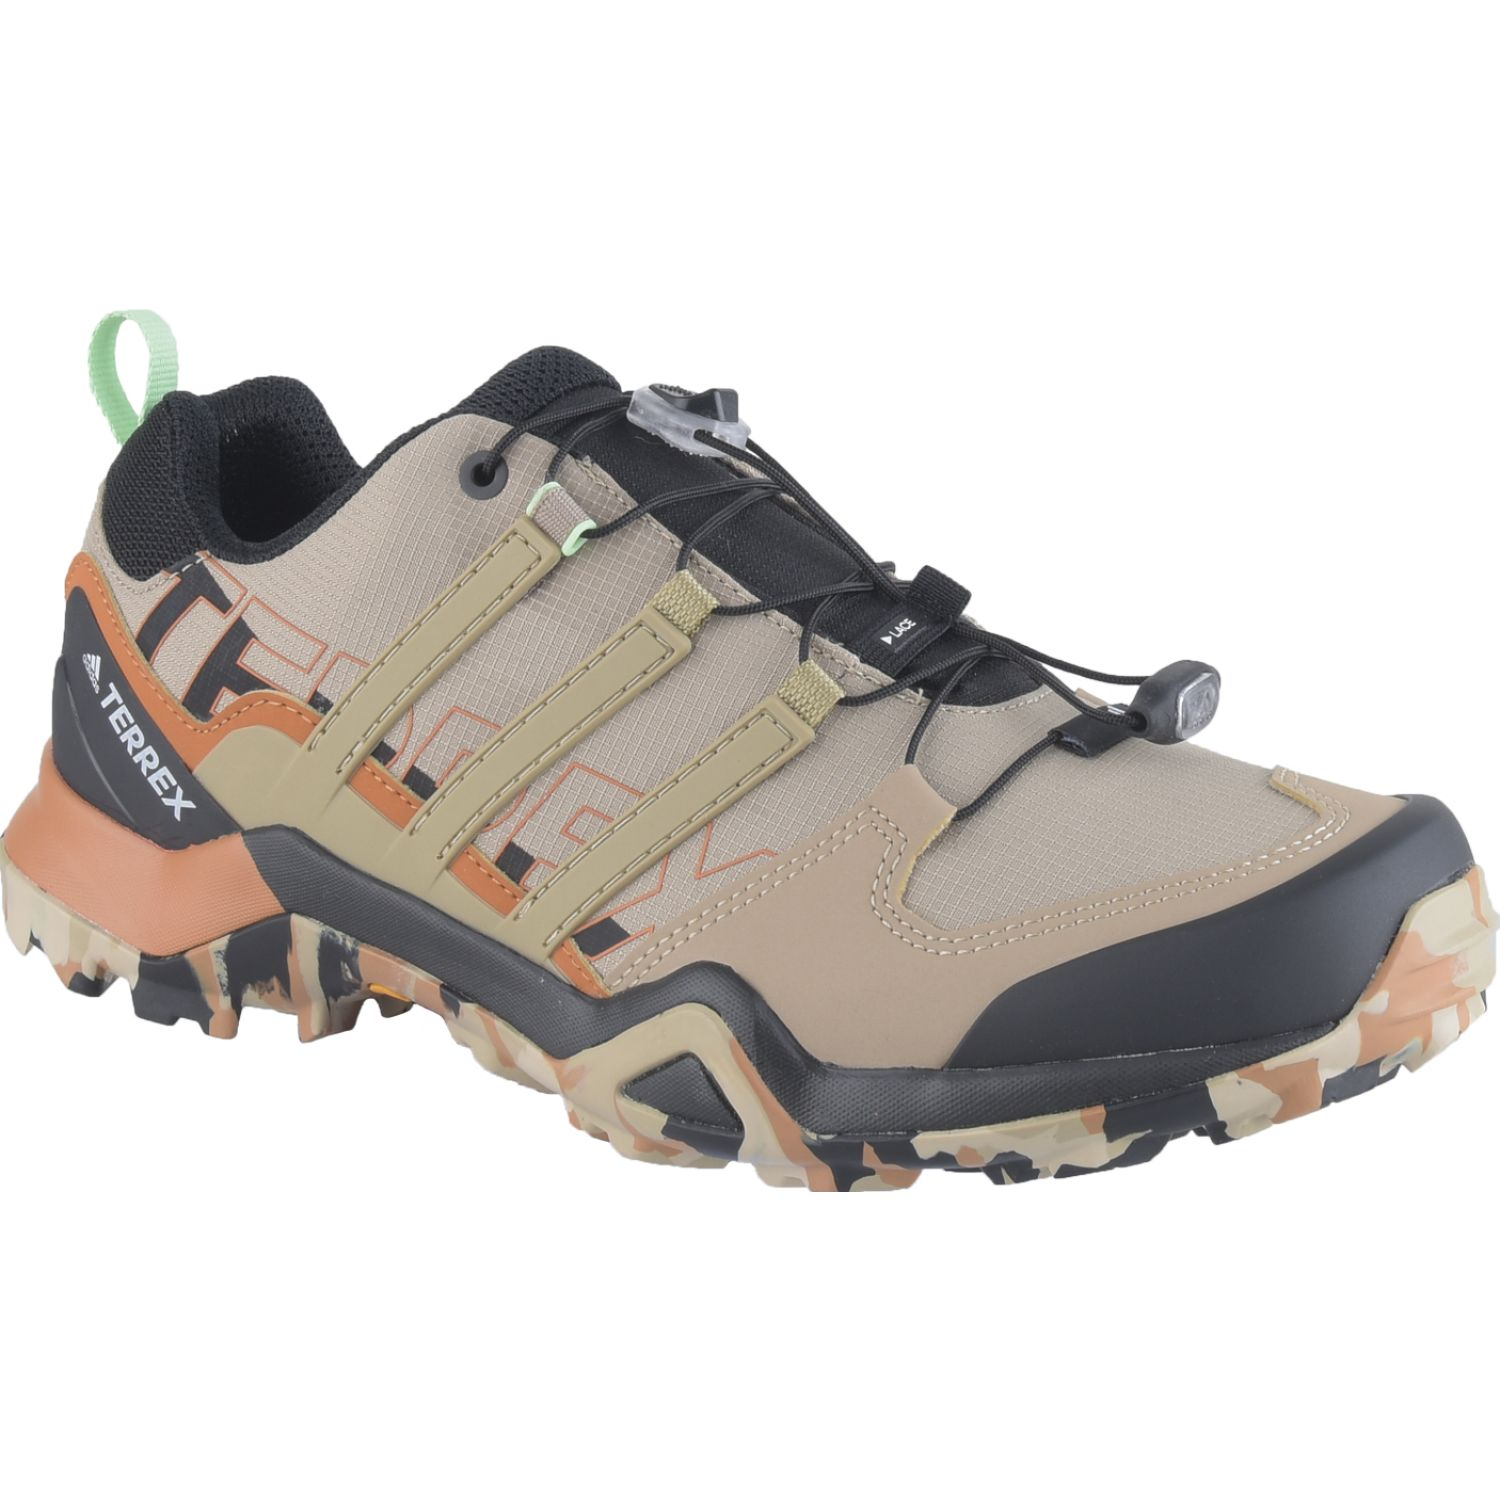 Adidas TERREX SWIFT R2 Marrón / negro Calzado hiking